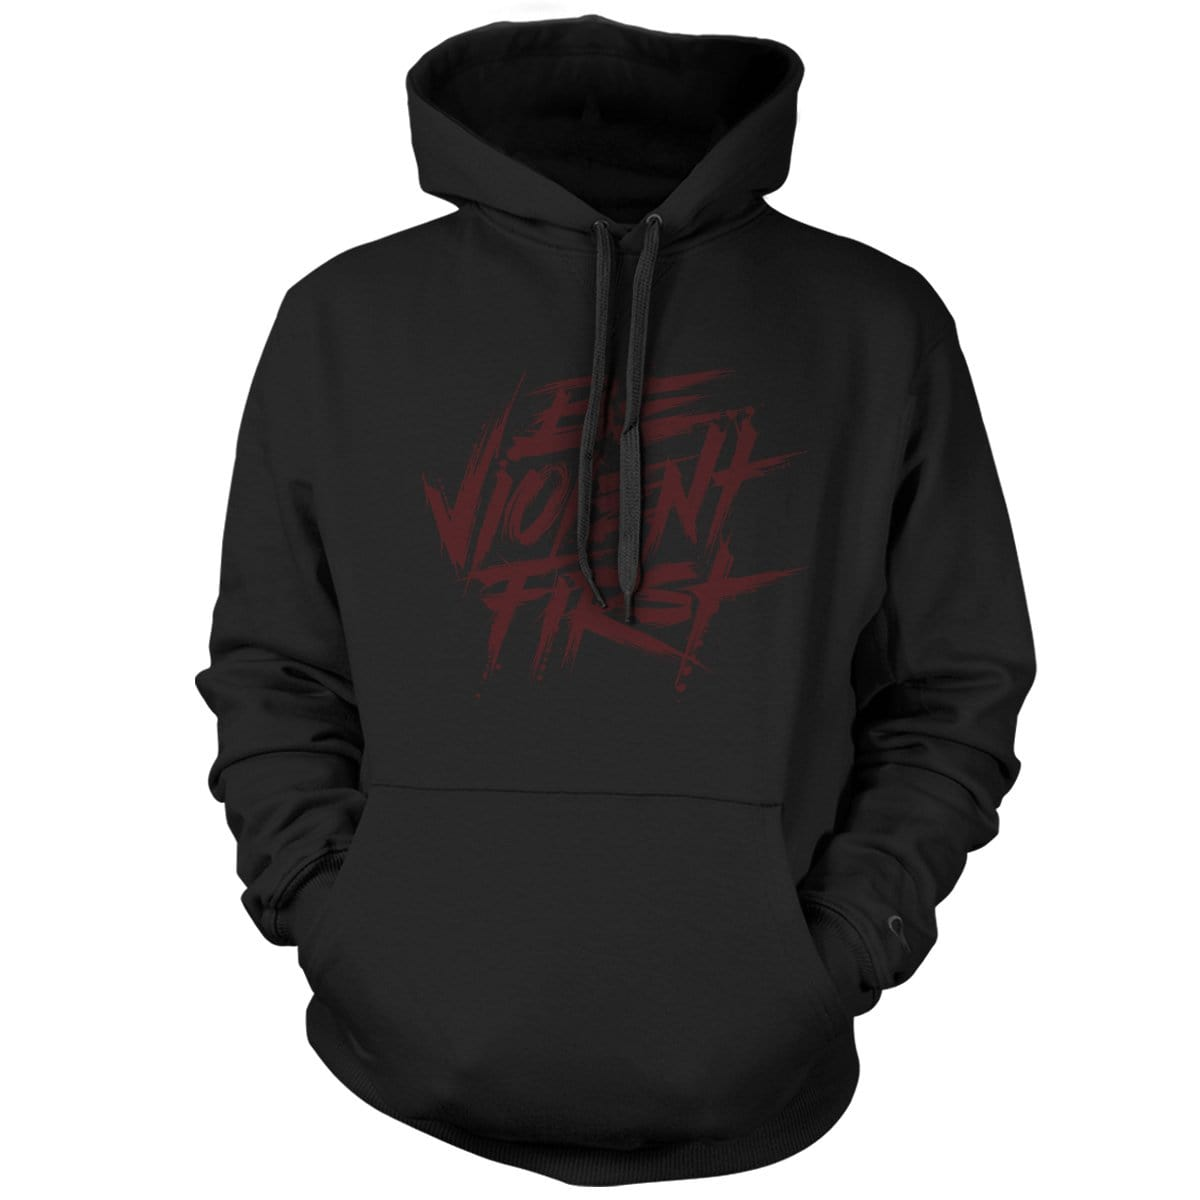 Be Violent First Hoodie - Black/Red - Hoodies - Pipe Hitters Union